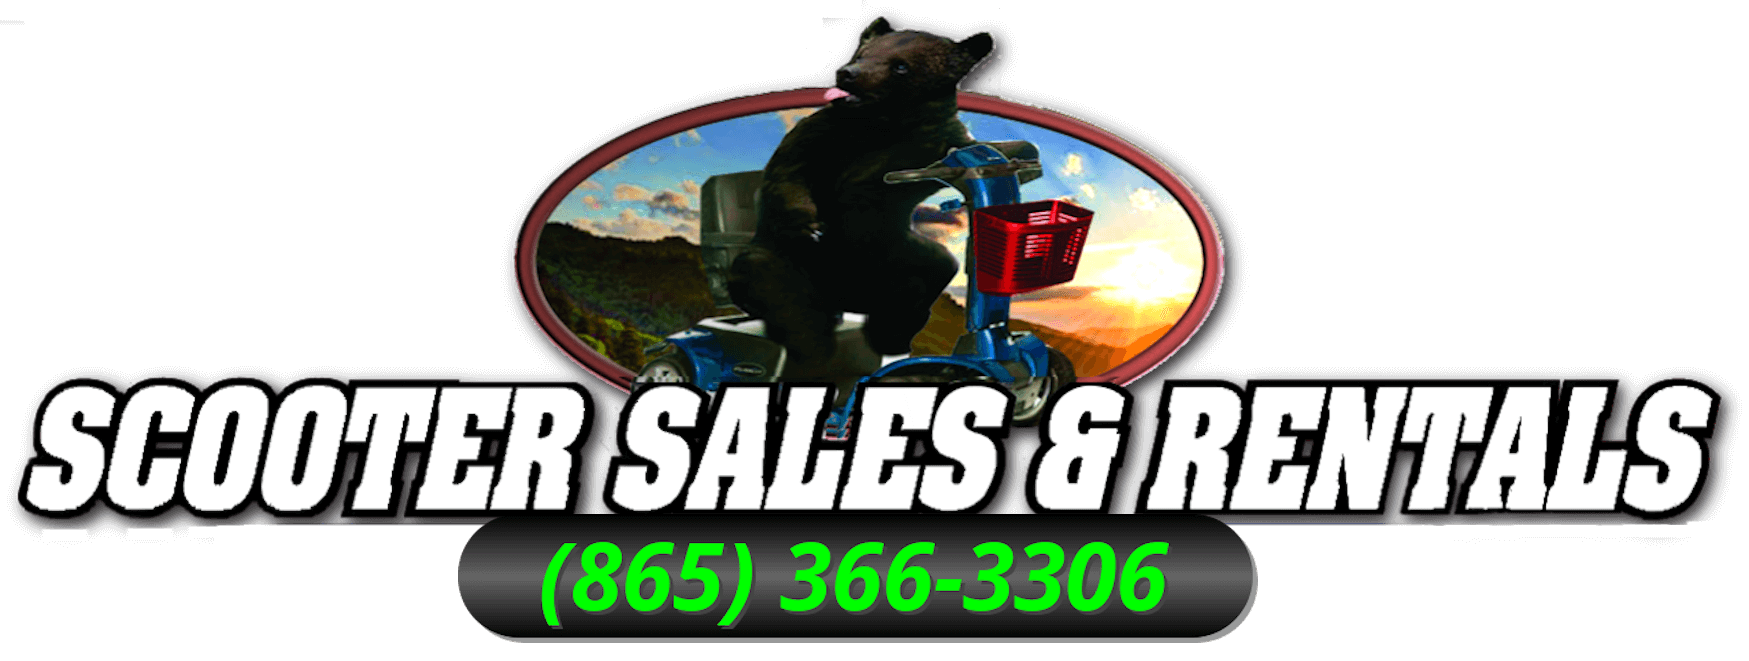 Scooter Sales and Rentals Logo